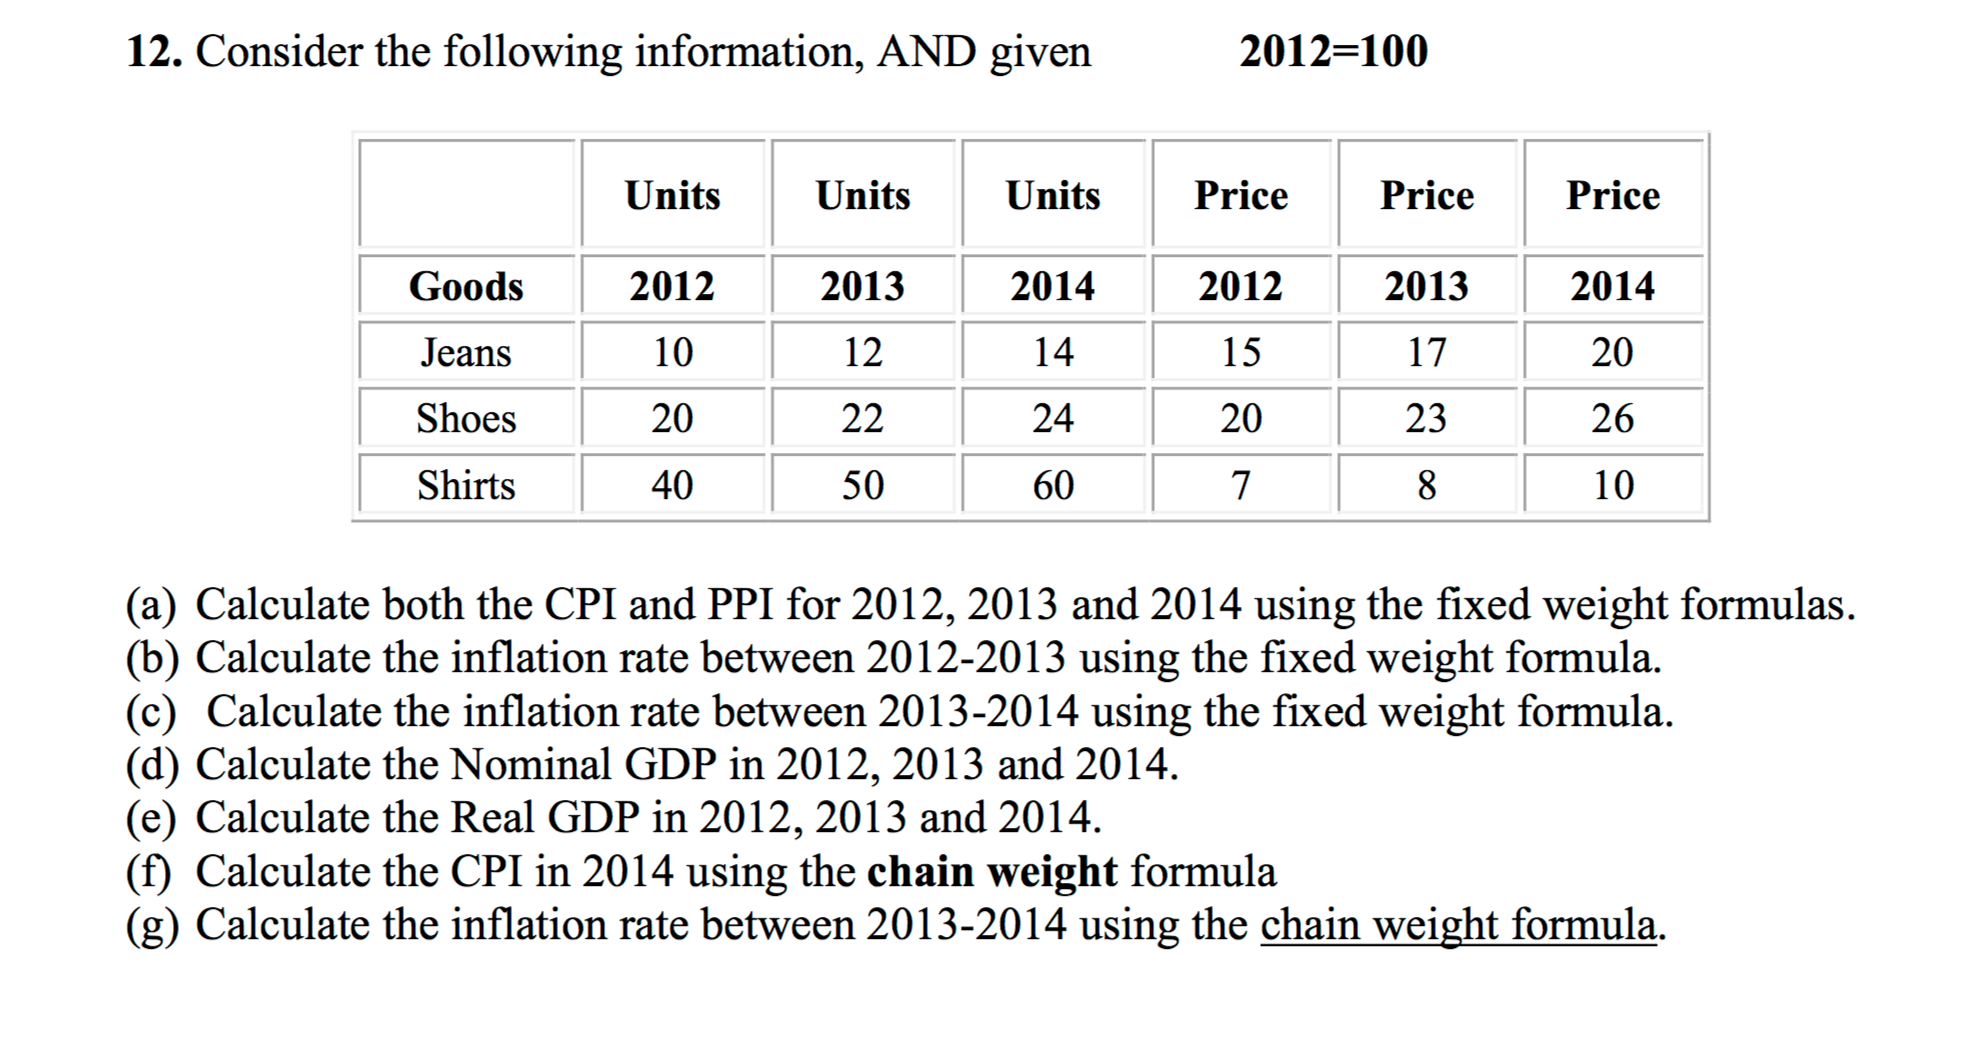 show transcribed image text calculate both the cpi and ppi for 2012 2013 and 2014 using the fixed weight formulas calculate the inflation rate between